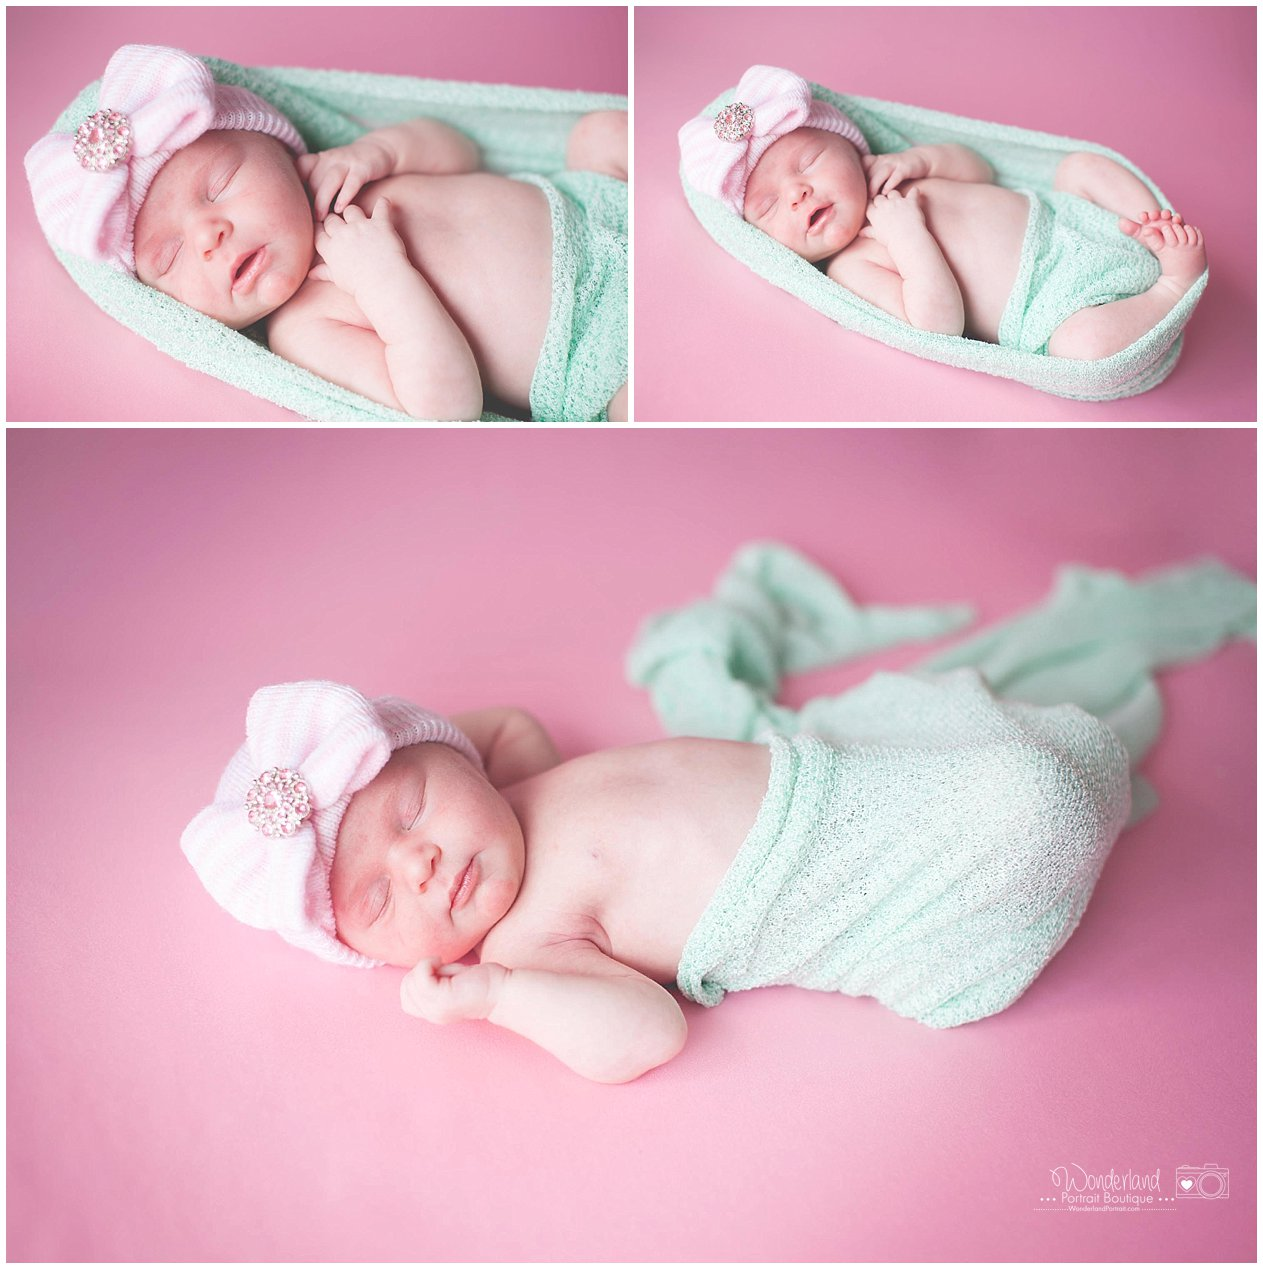 Newborn baby girl Green and Pink Creative Wrap pose ideas